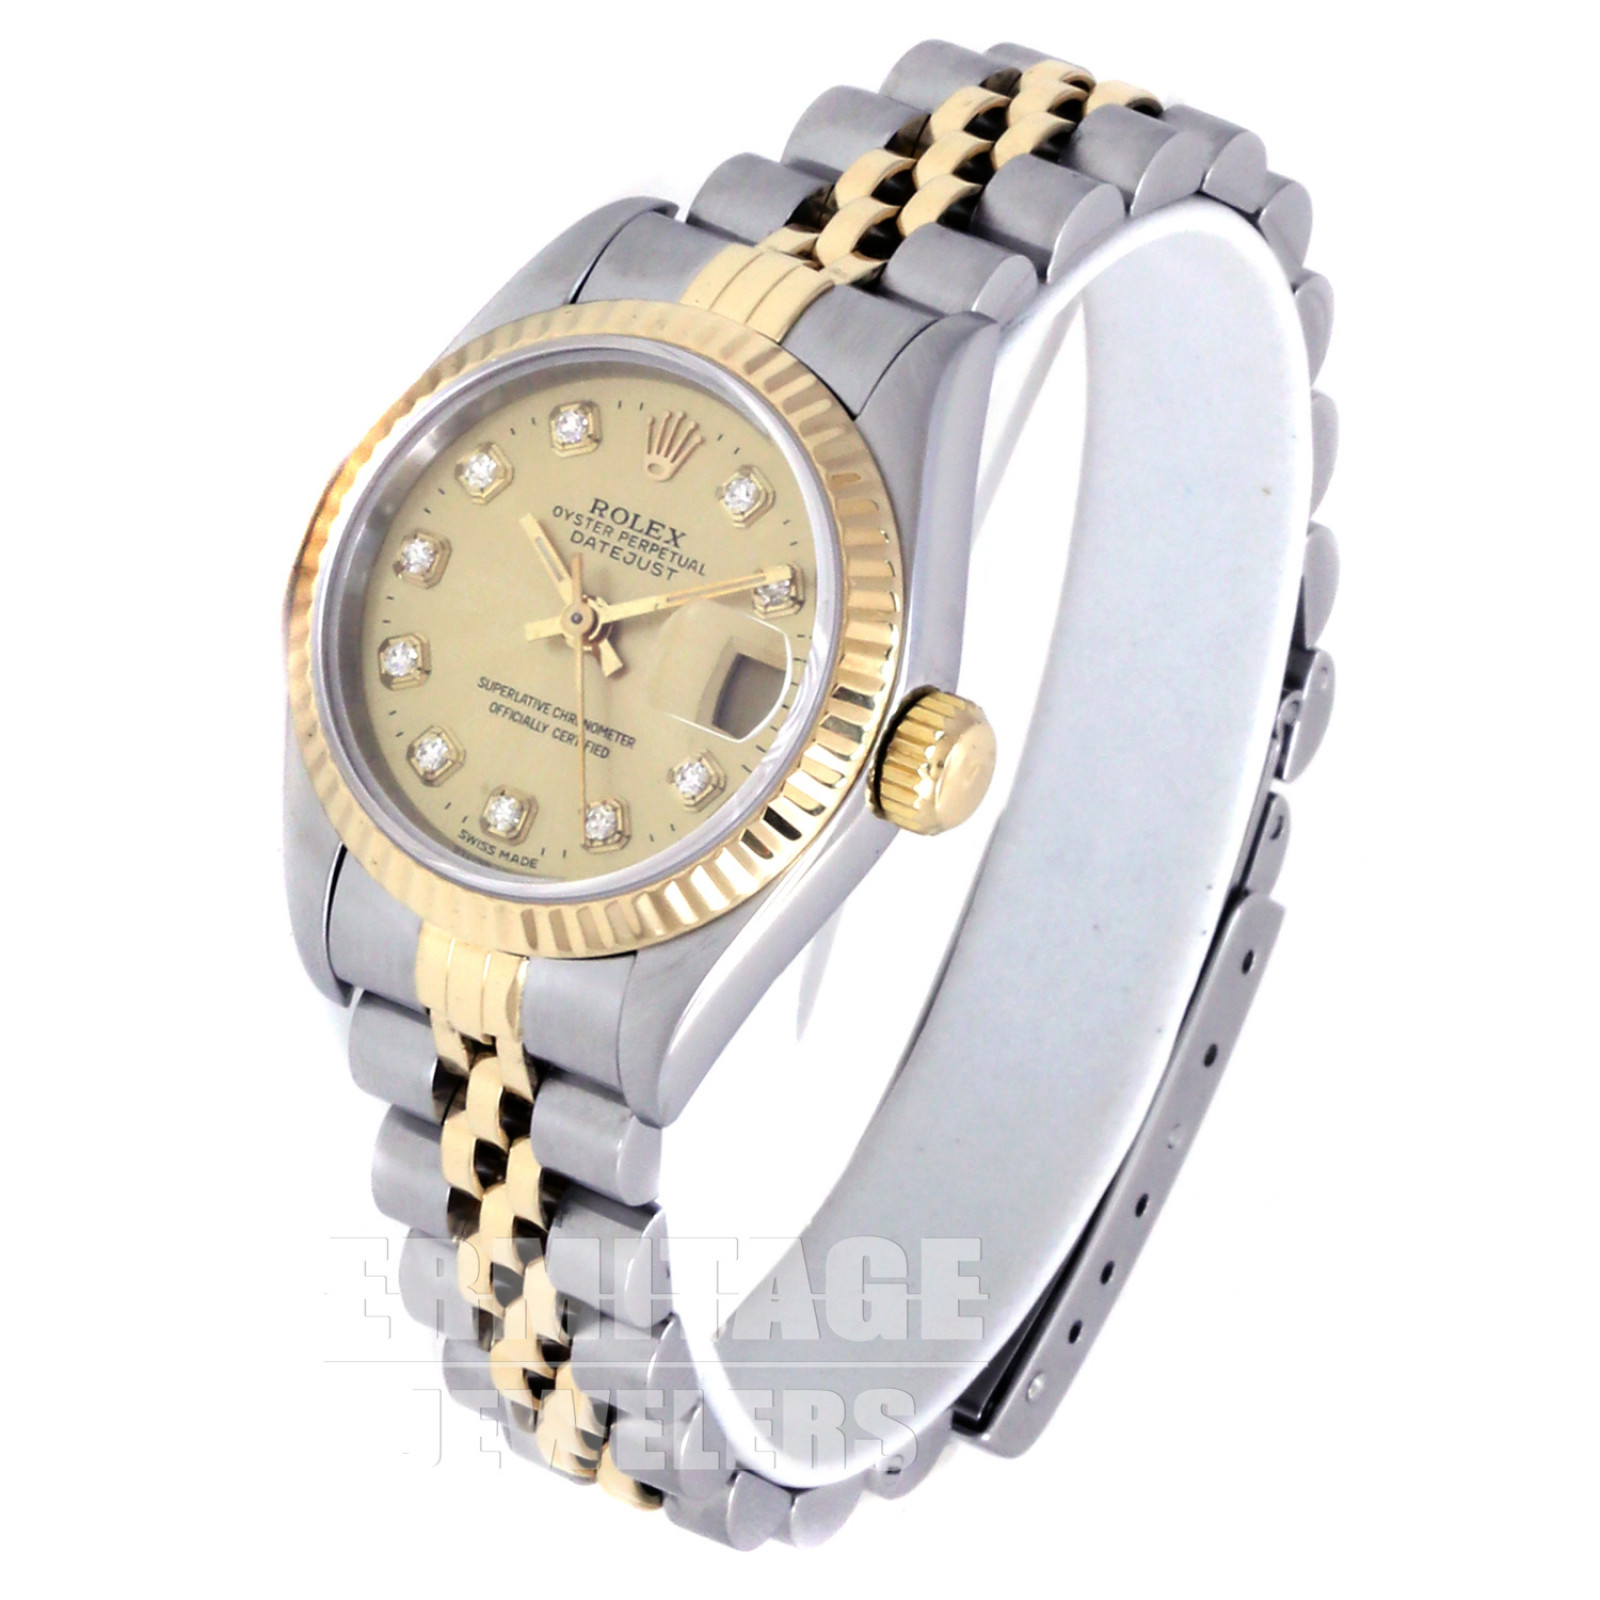 Ladies Rolex Datejust 69173 with Champagne Dial